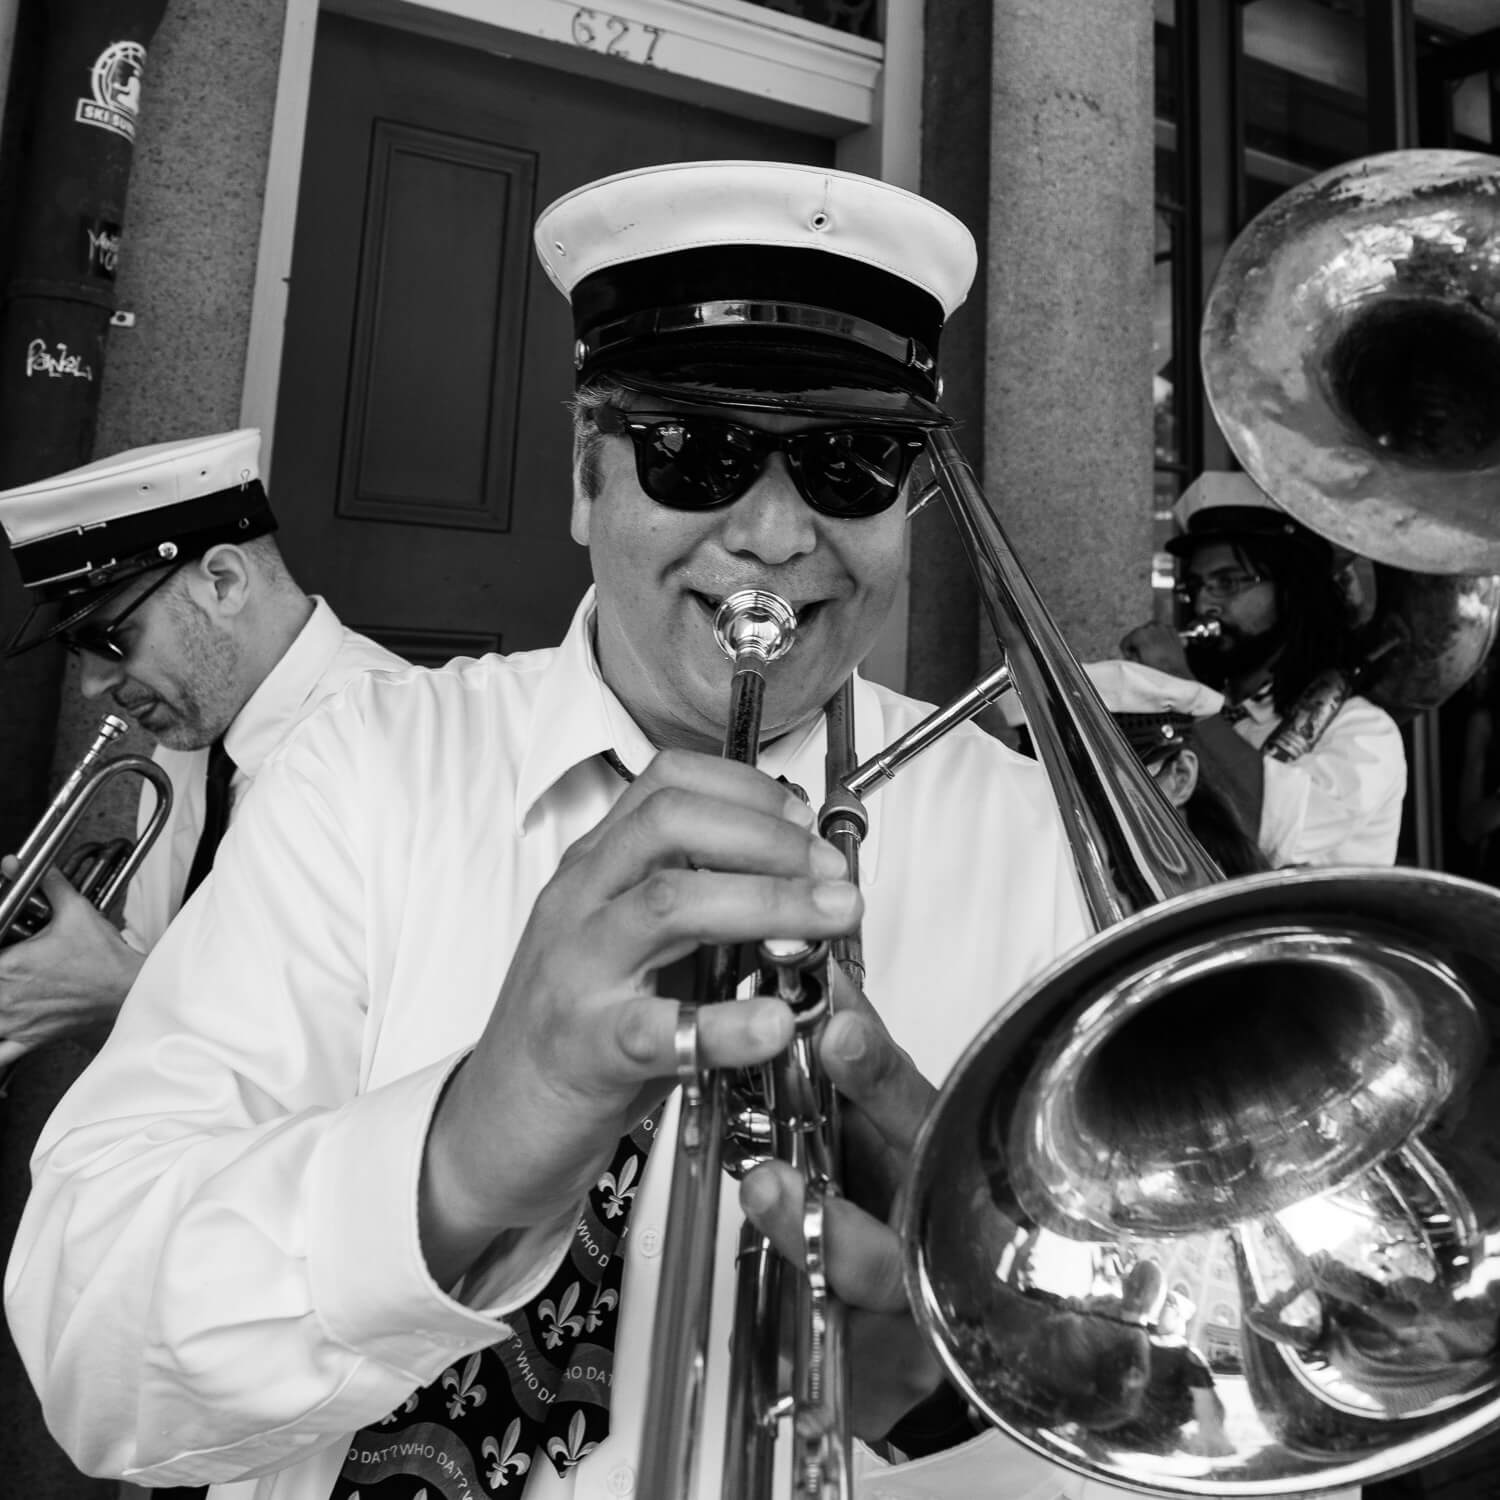 """Trombone player in a second line - Travel photography and guide by © Natasha Lequepeys for """"And Then I Met Yoko"""". #neworleans #nola #photoblog #streetphotography #travelitinerary #fujifilm"""